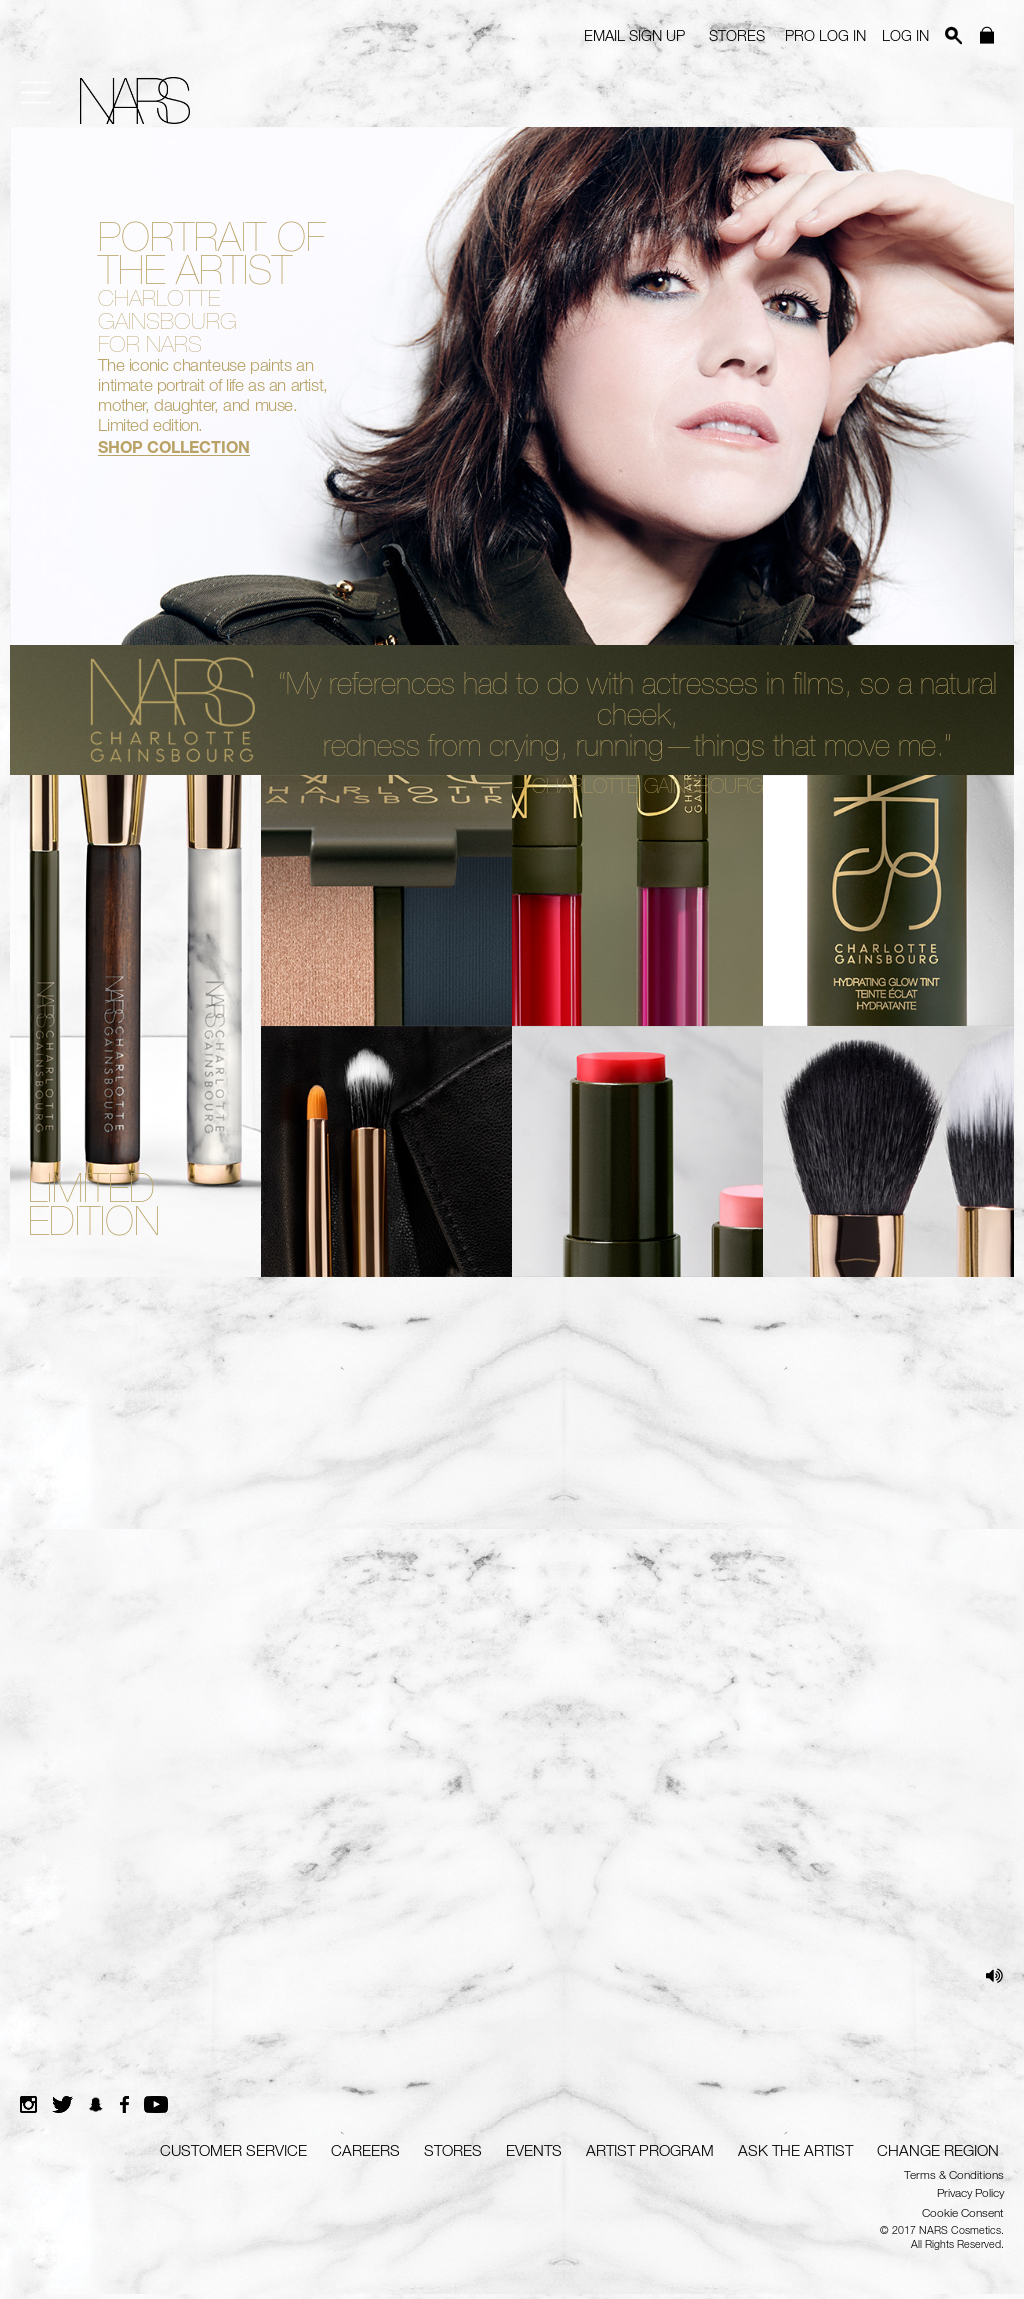 Nars Cosmetics Competitors, Revenue and Employees - Owler Company